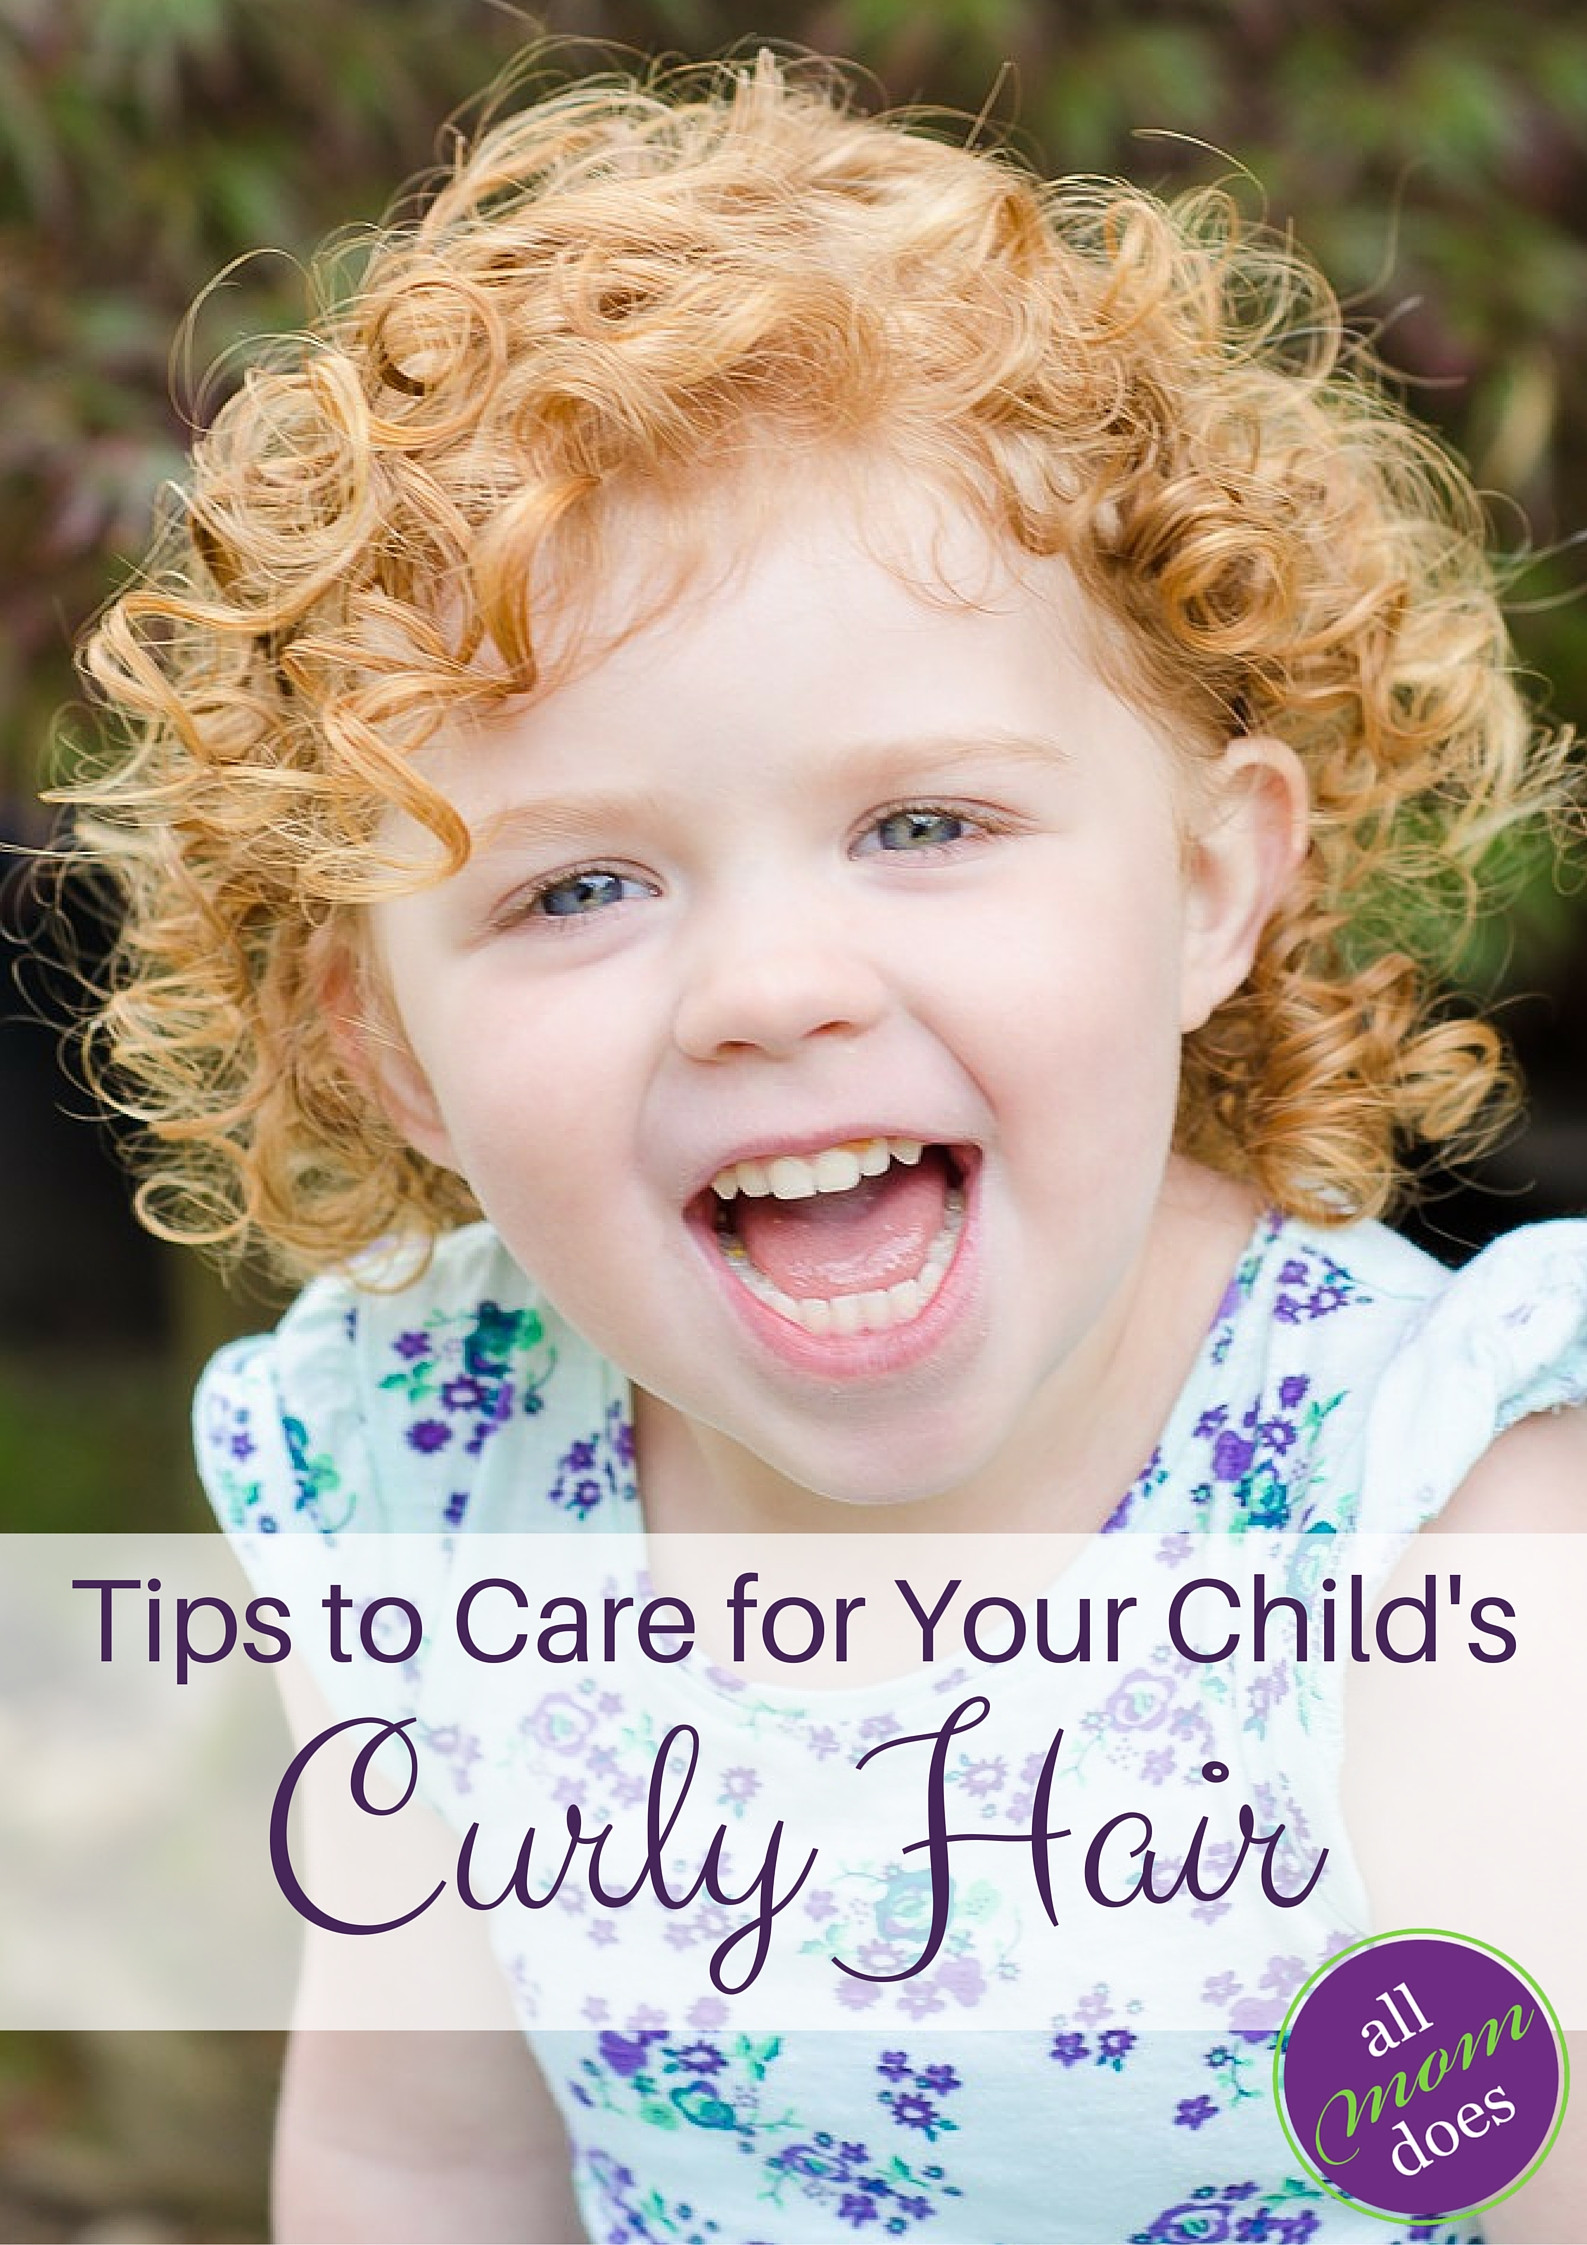 Kids Haircuts Curly Hair  Tips to Care for Your Child's Curly Hair